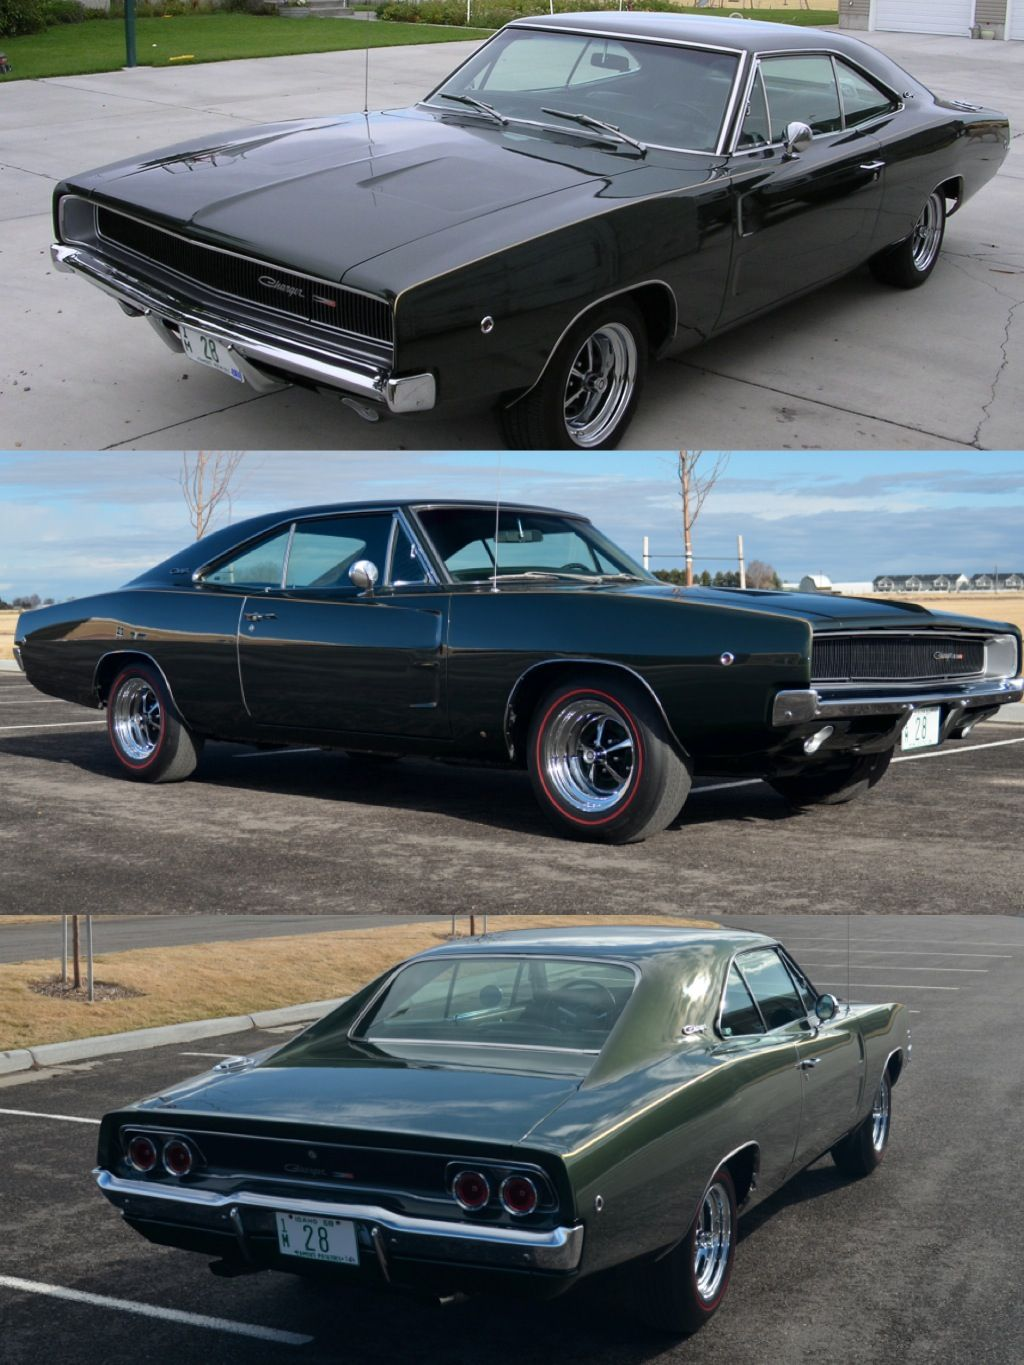 Dodge Charger Wikipedia : dodge, charger, wikipedia, Ultimate, Dodge:, First, Dodge, Charger